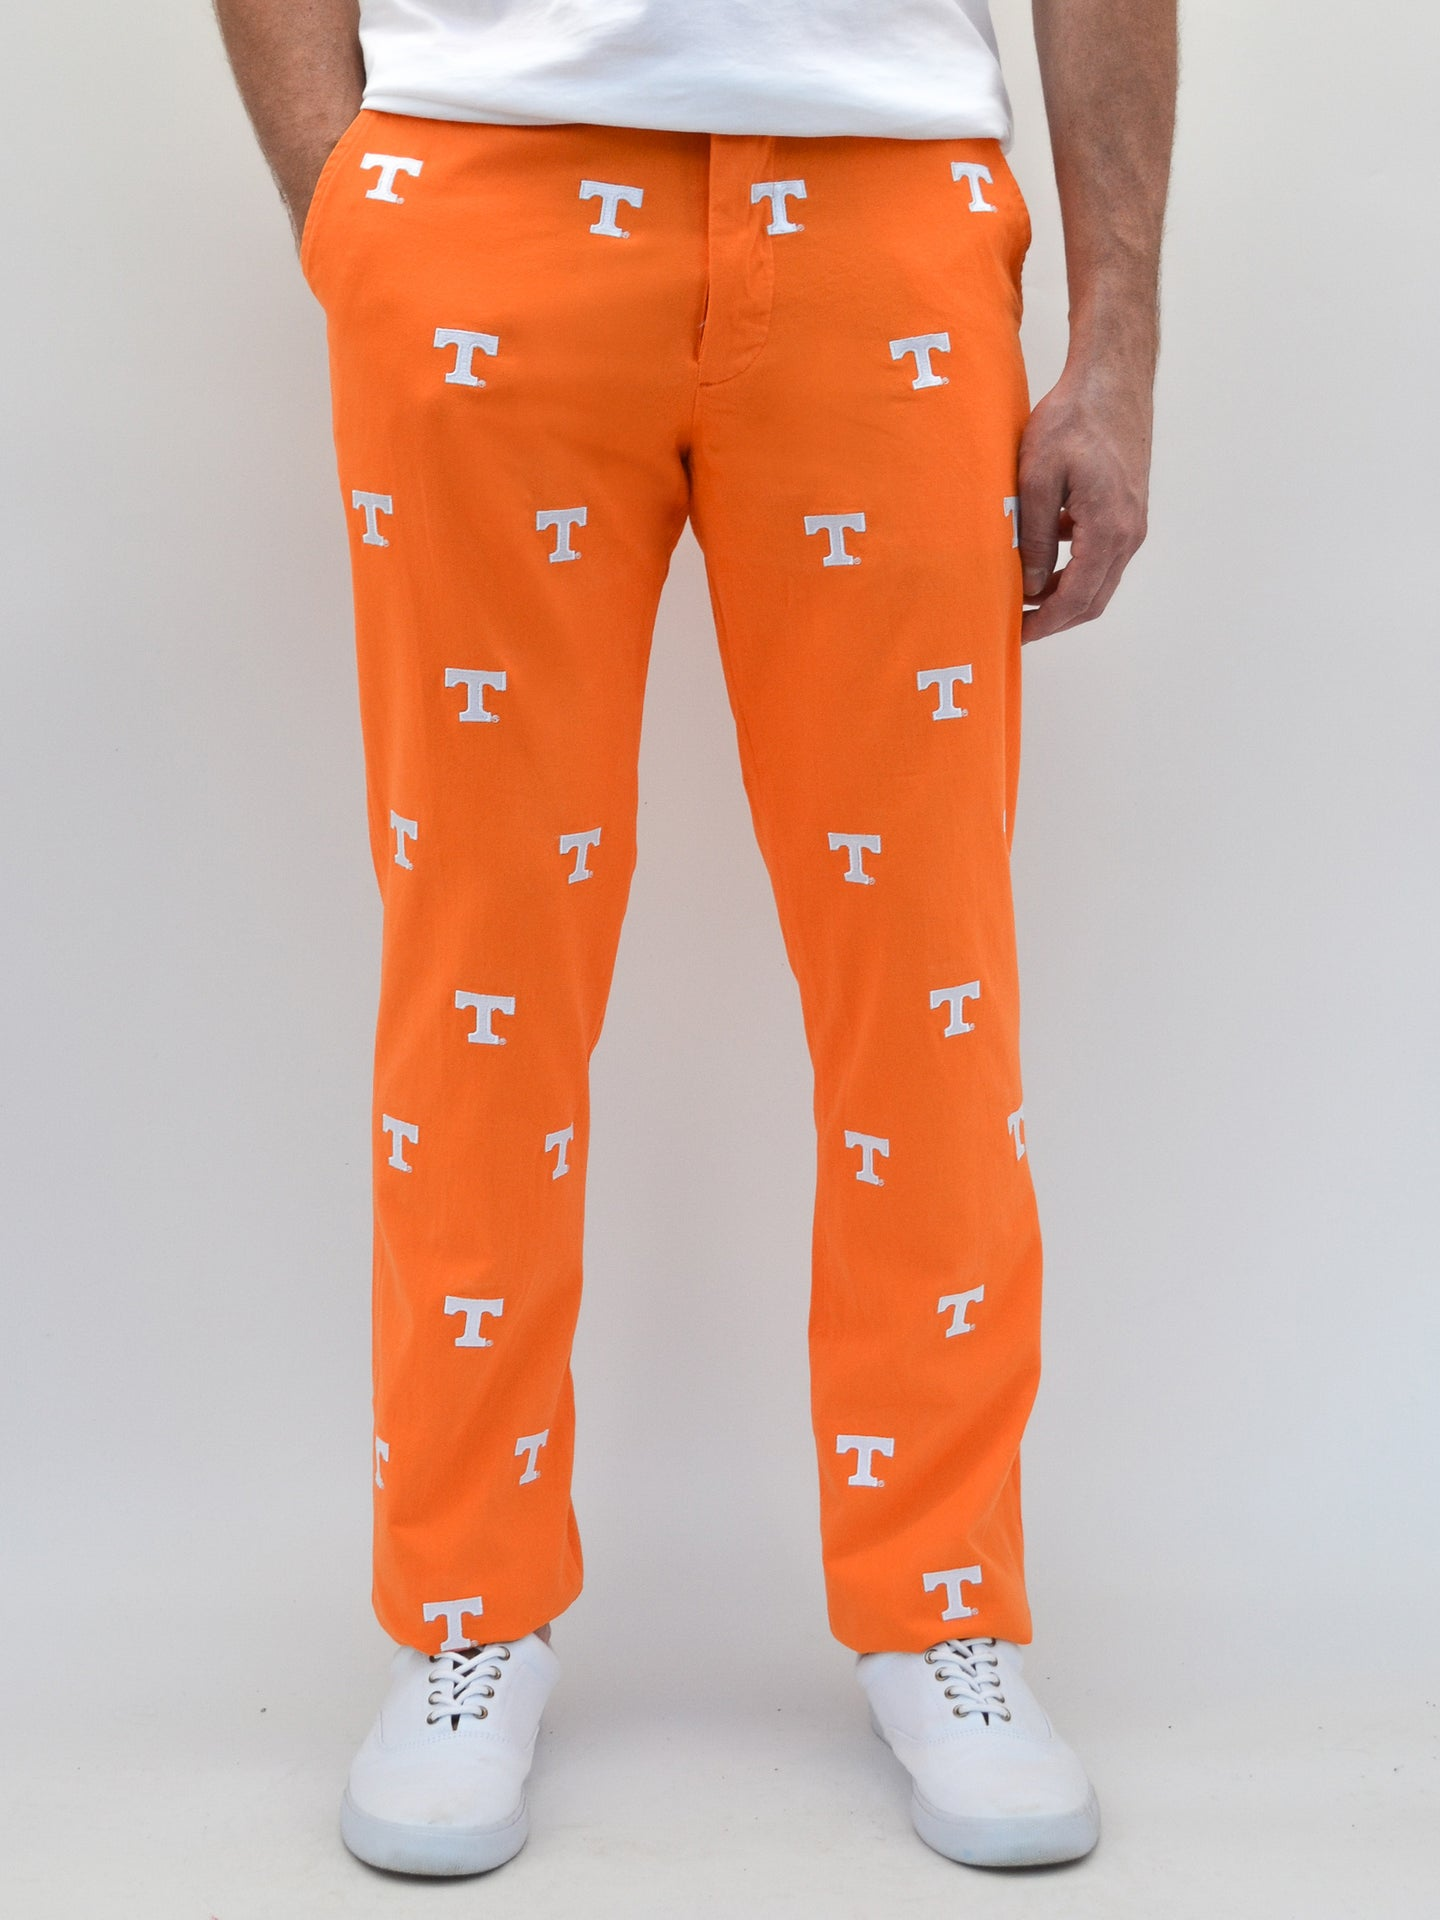 Tennessee Orange Pants